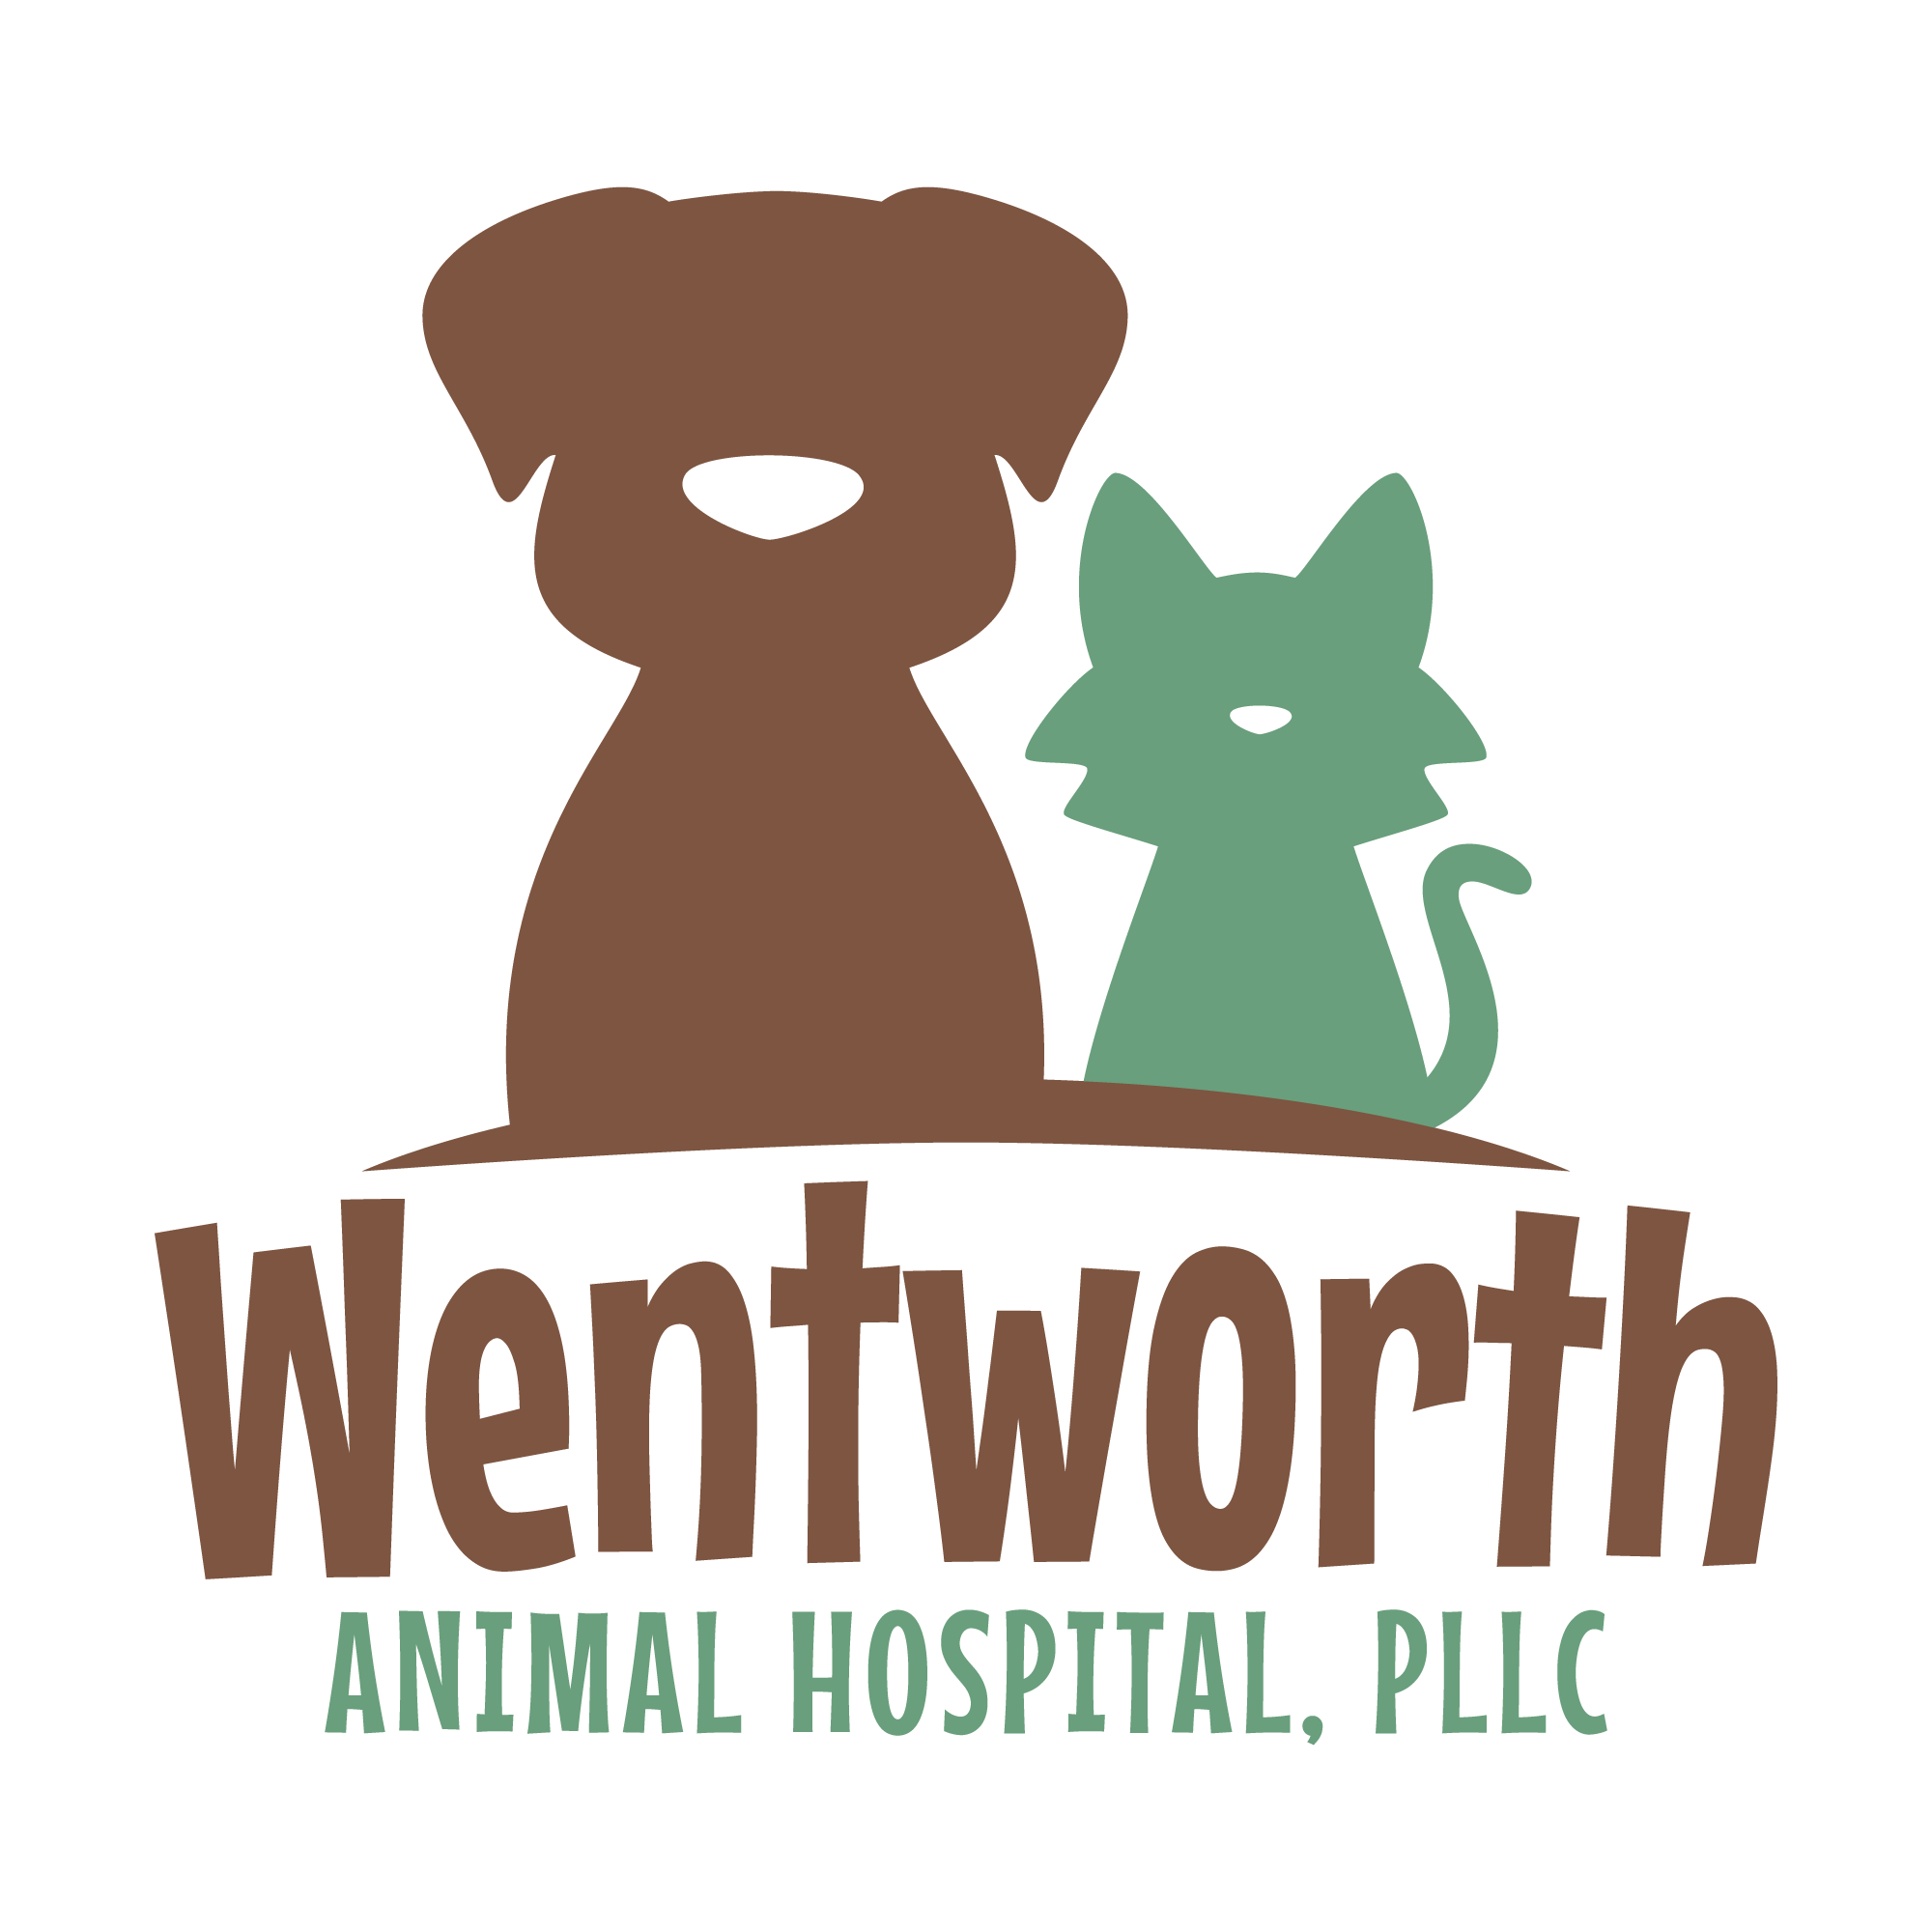 Emergency clipart veterinary hospital. Wentworth animal vet services